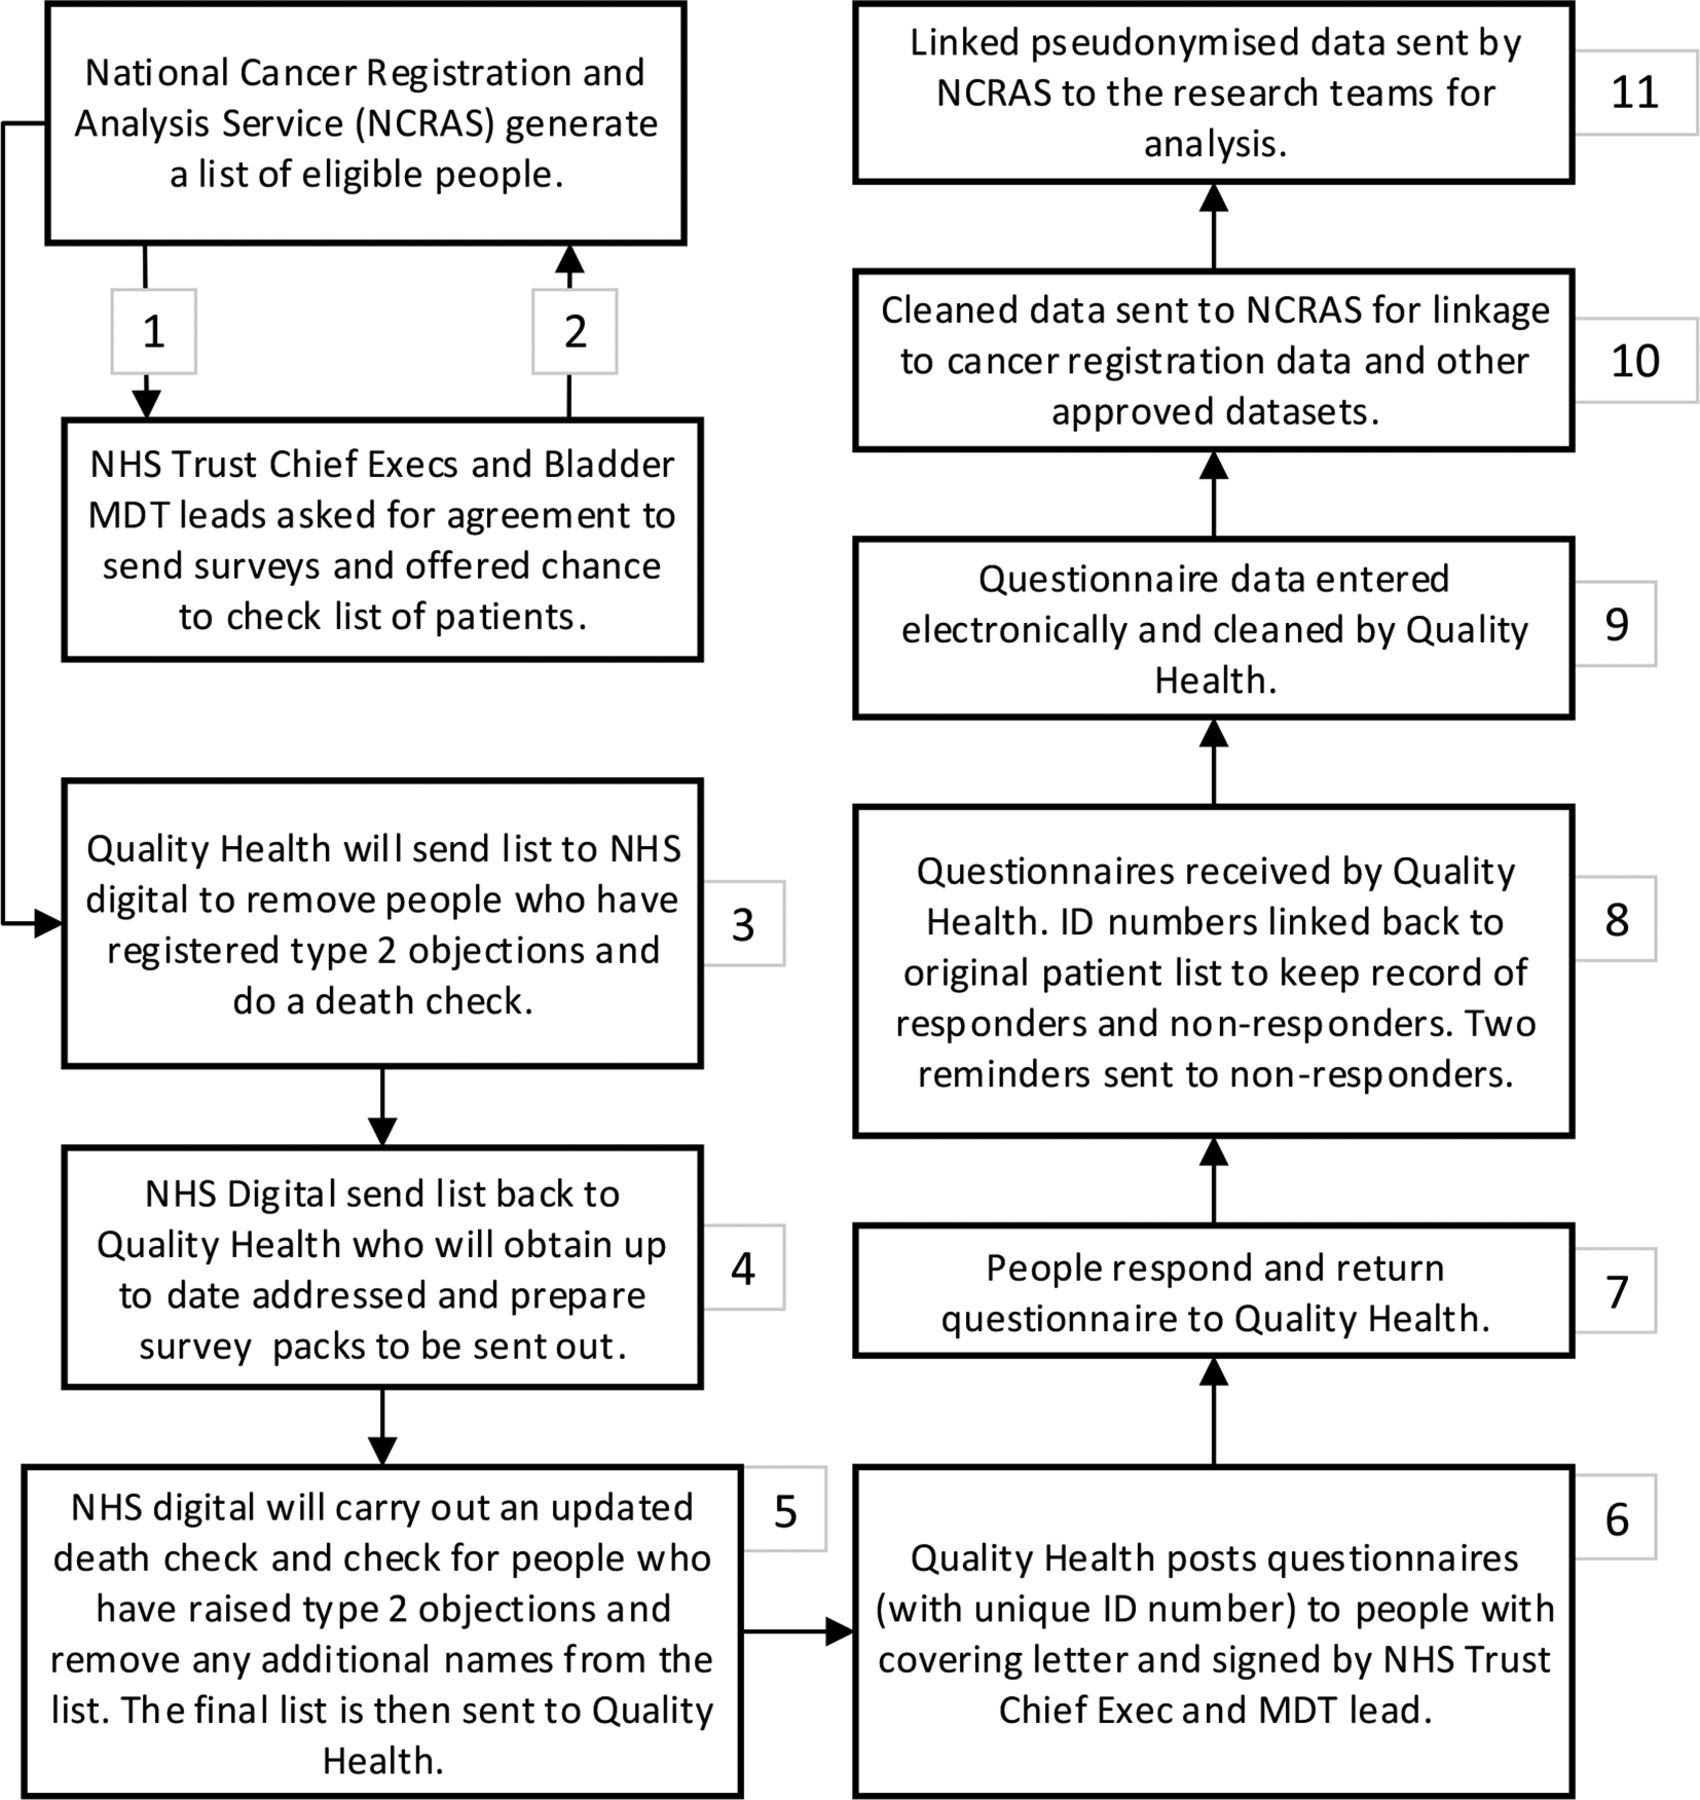 Life and bladder cancer: protocol for a longitudinal and cross